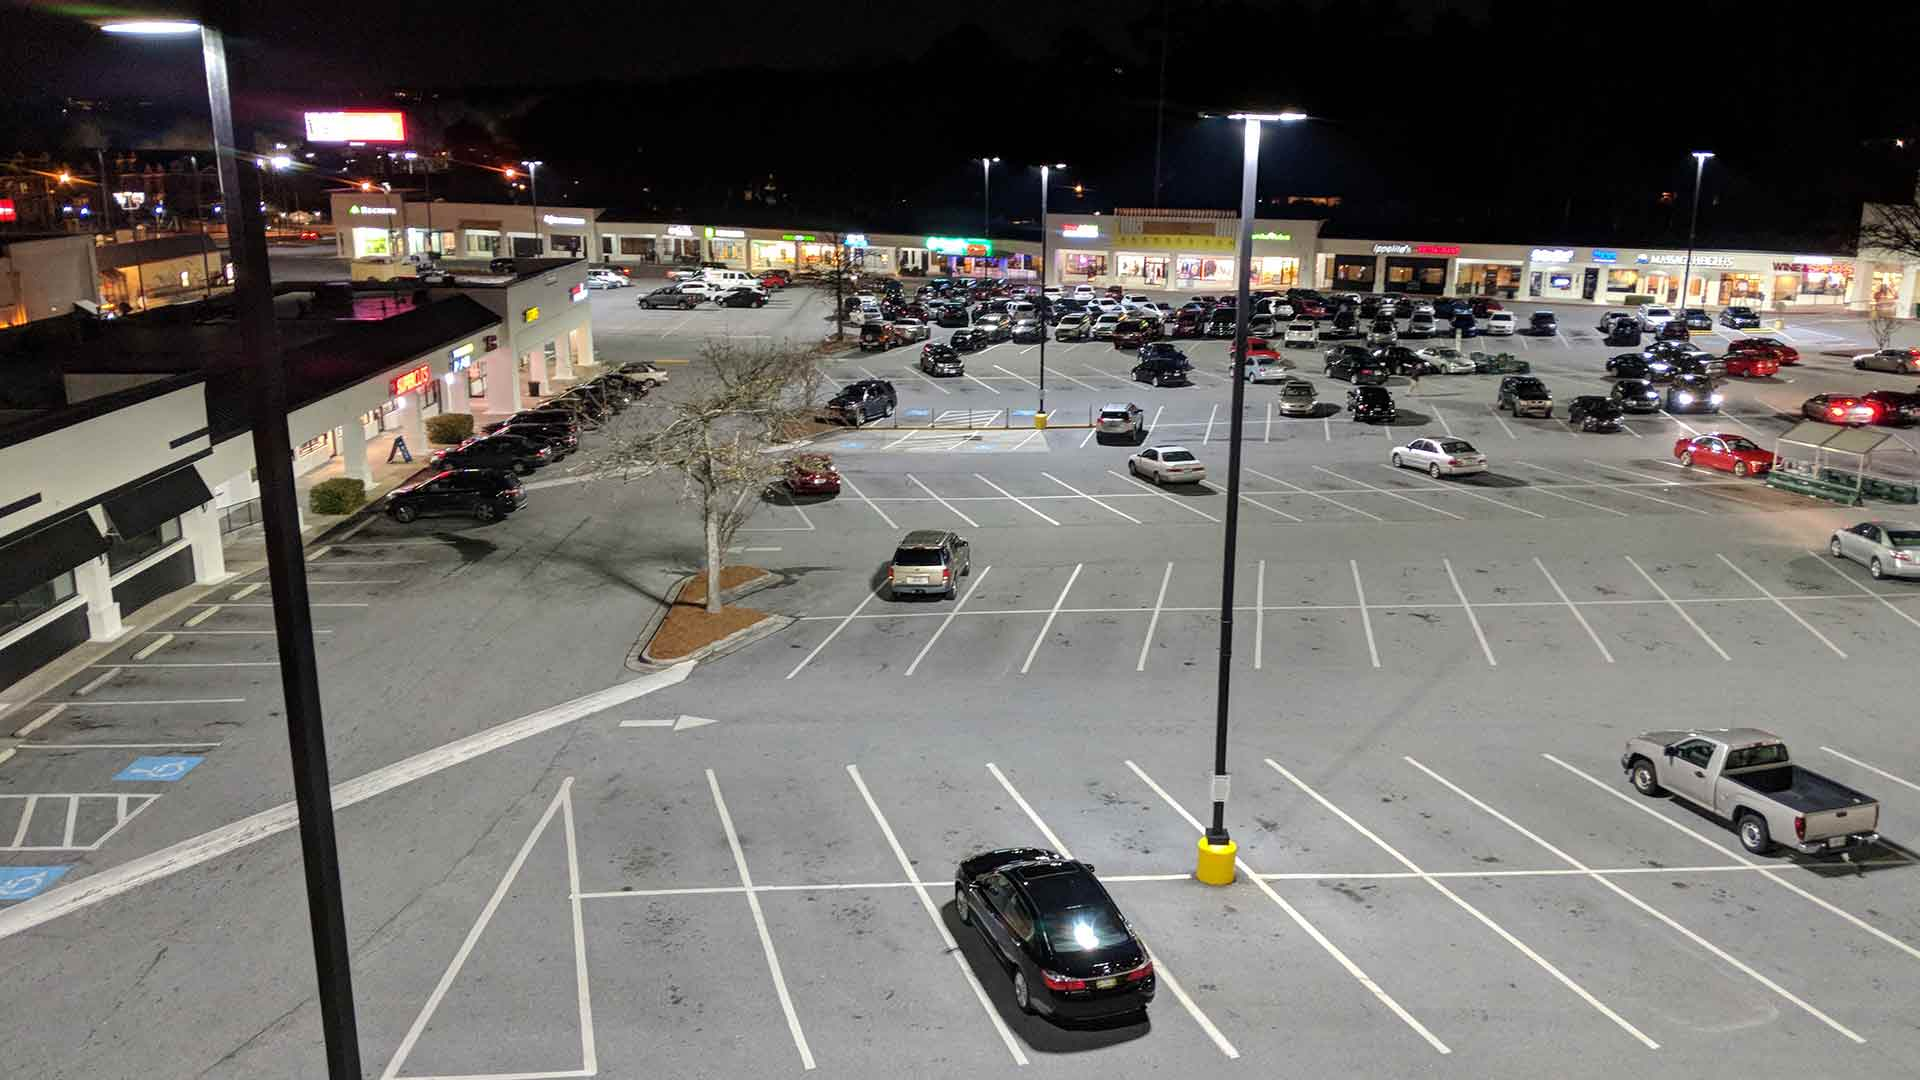 Parking and Area Lighting